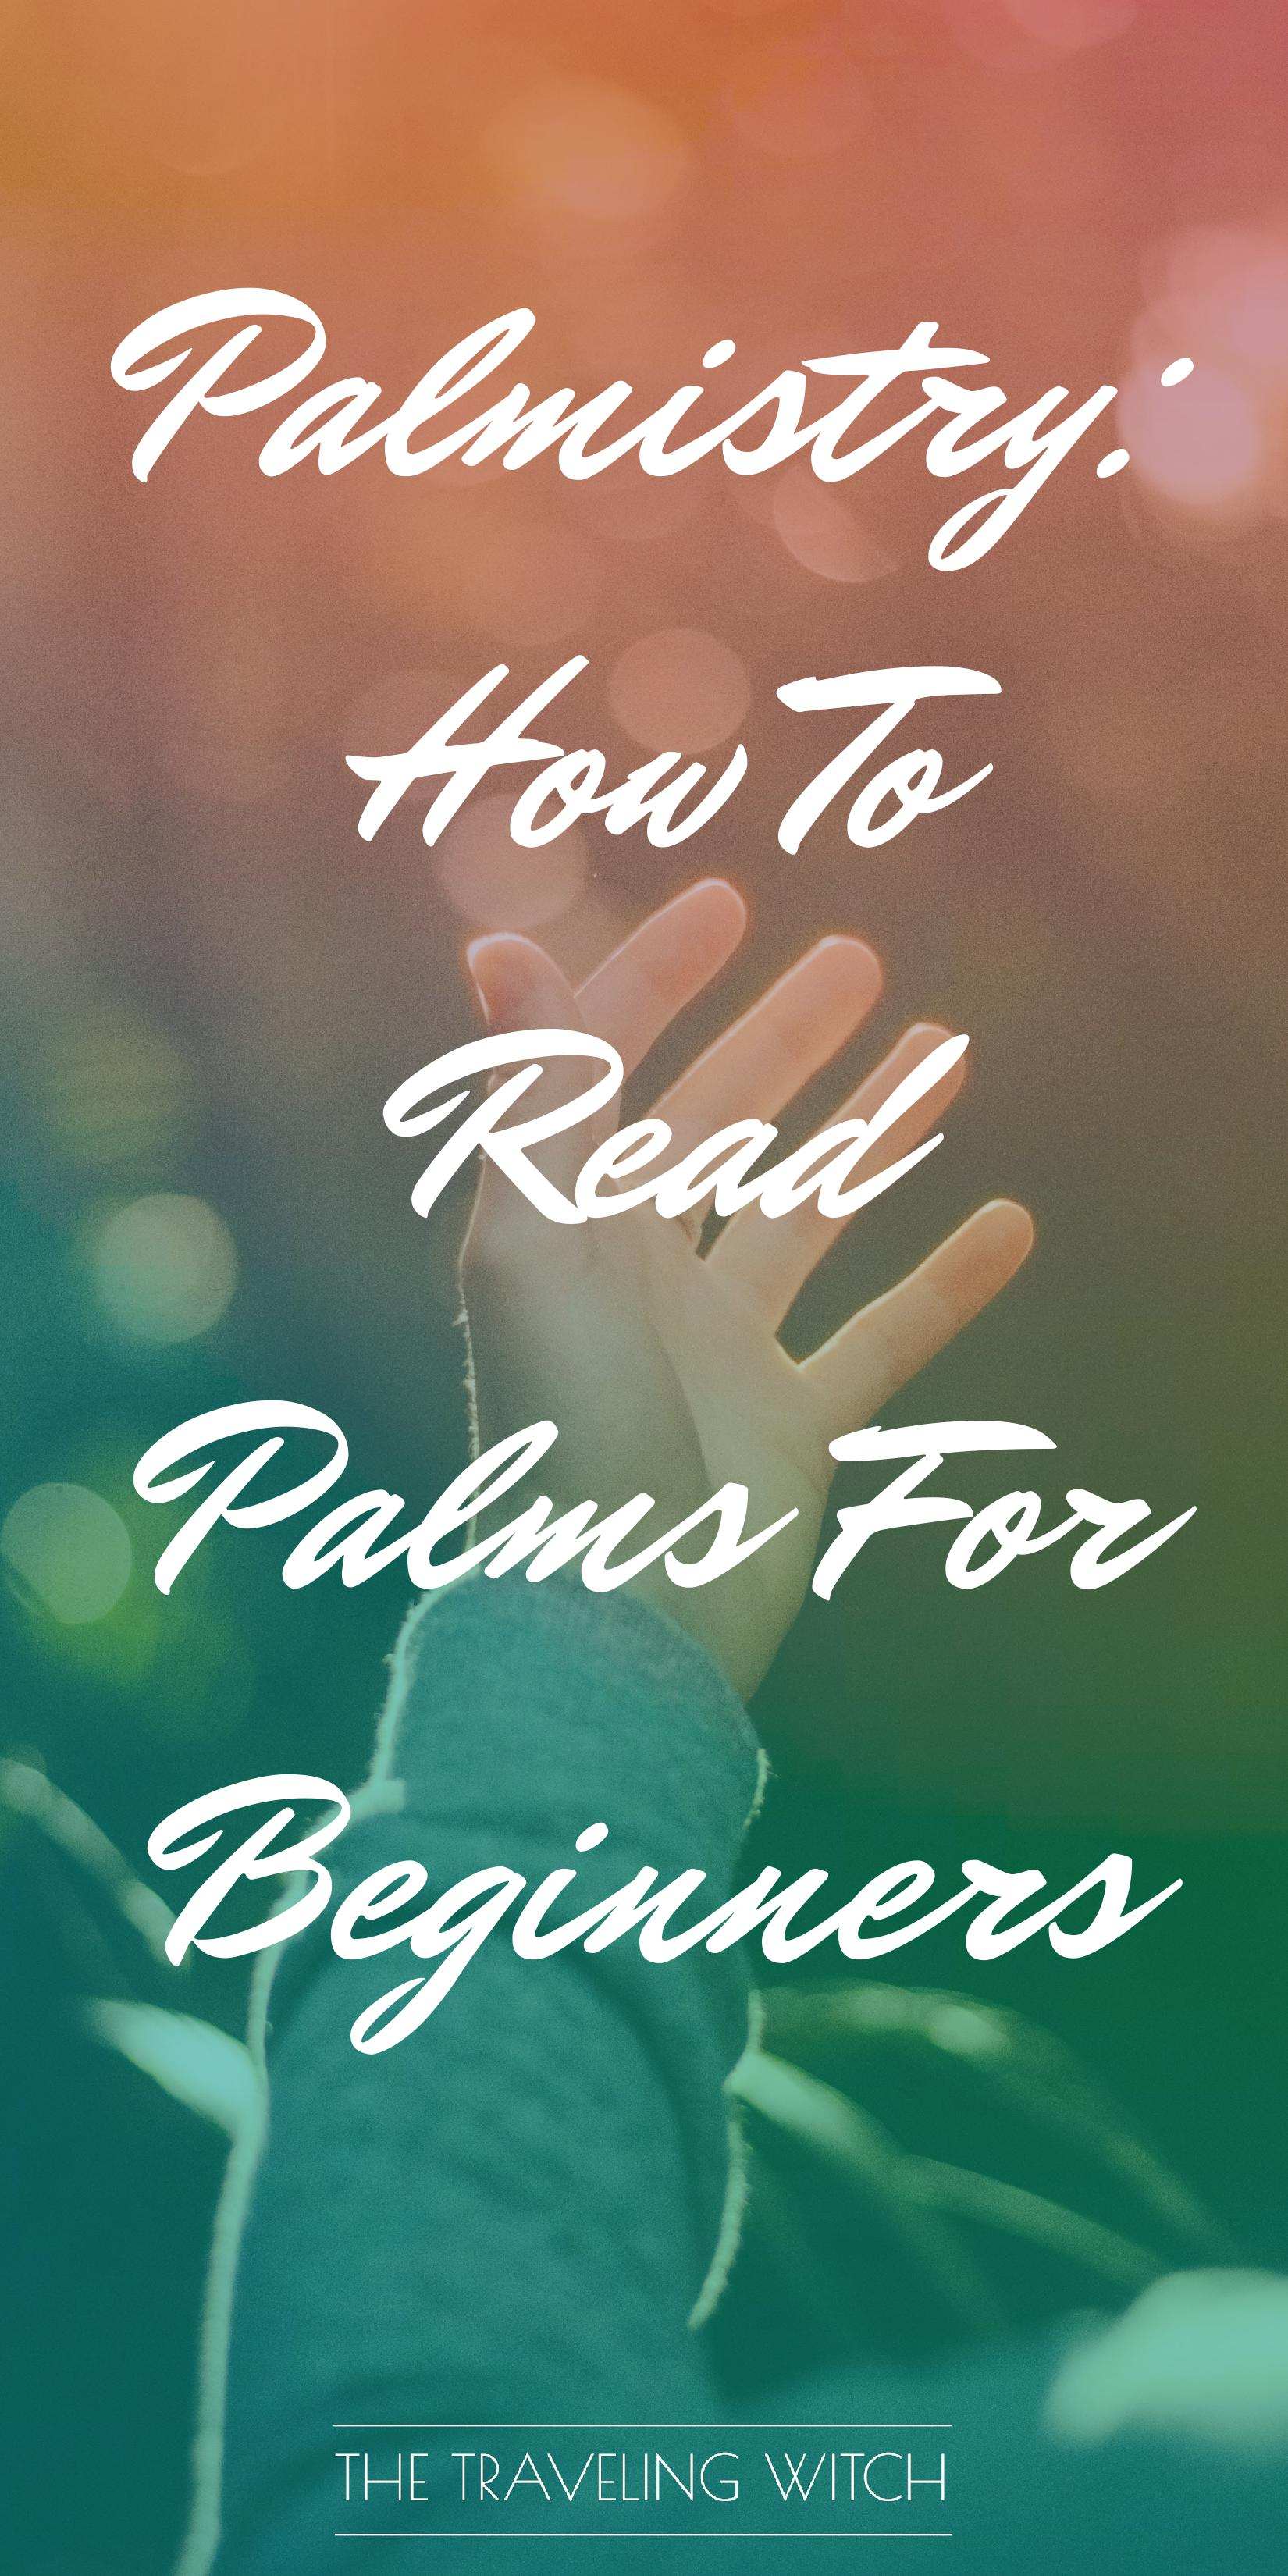 Palmistry: How To Read Palms For Beginners by The Traveling Witch